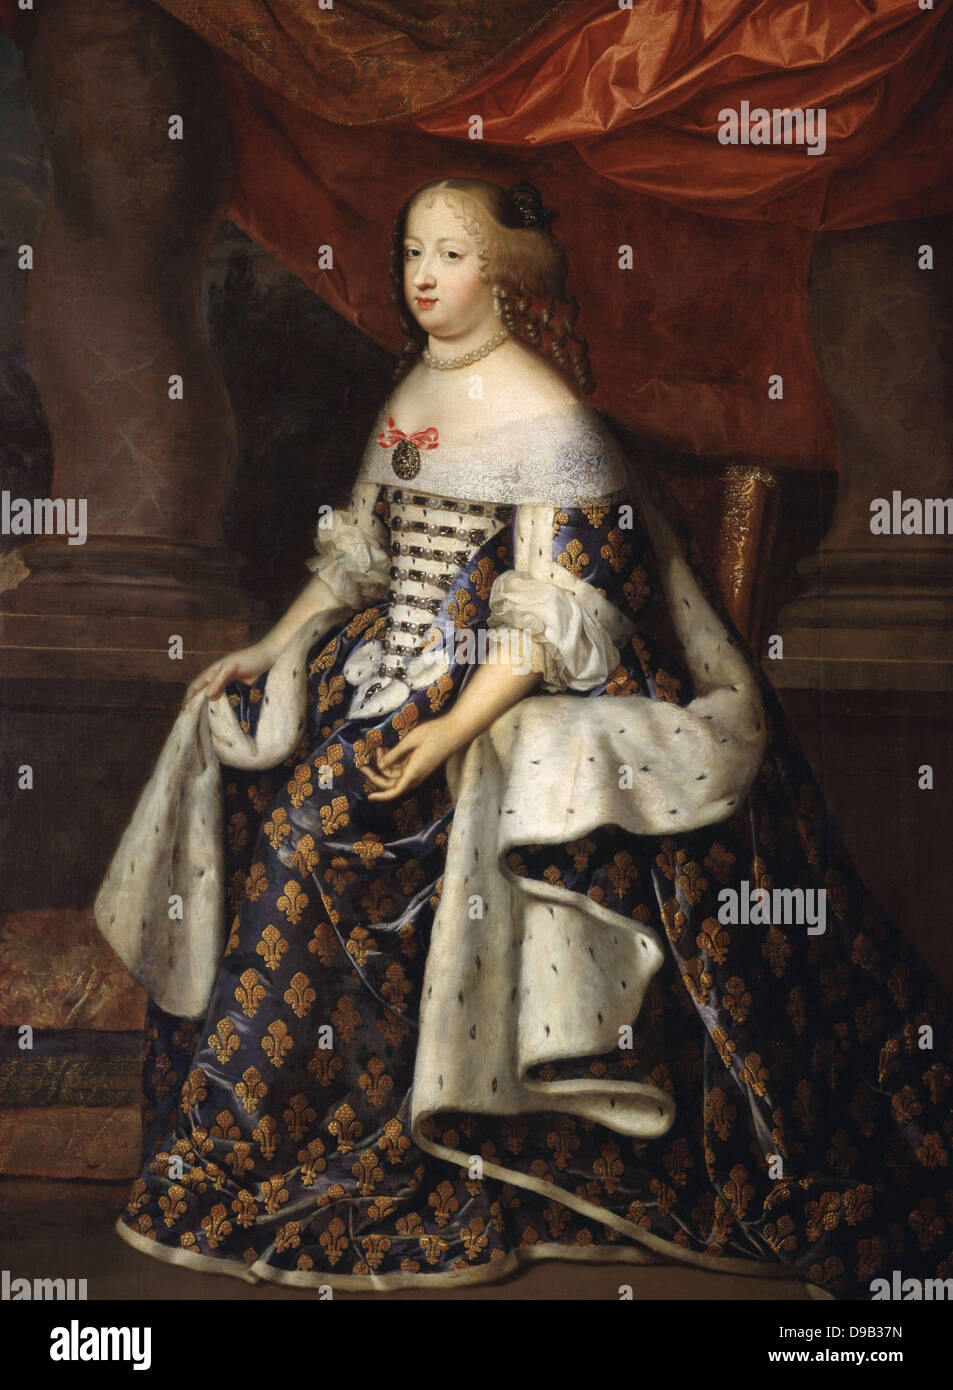 Charles Beaubrun Portrait of Marie-Thérèse of Austria Queen of France XVII th century Versailles Museum - Stock Image